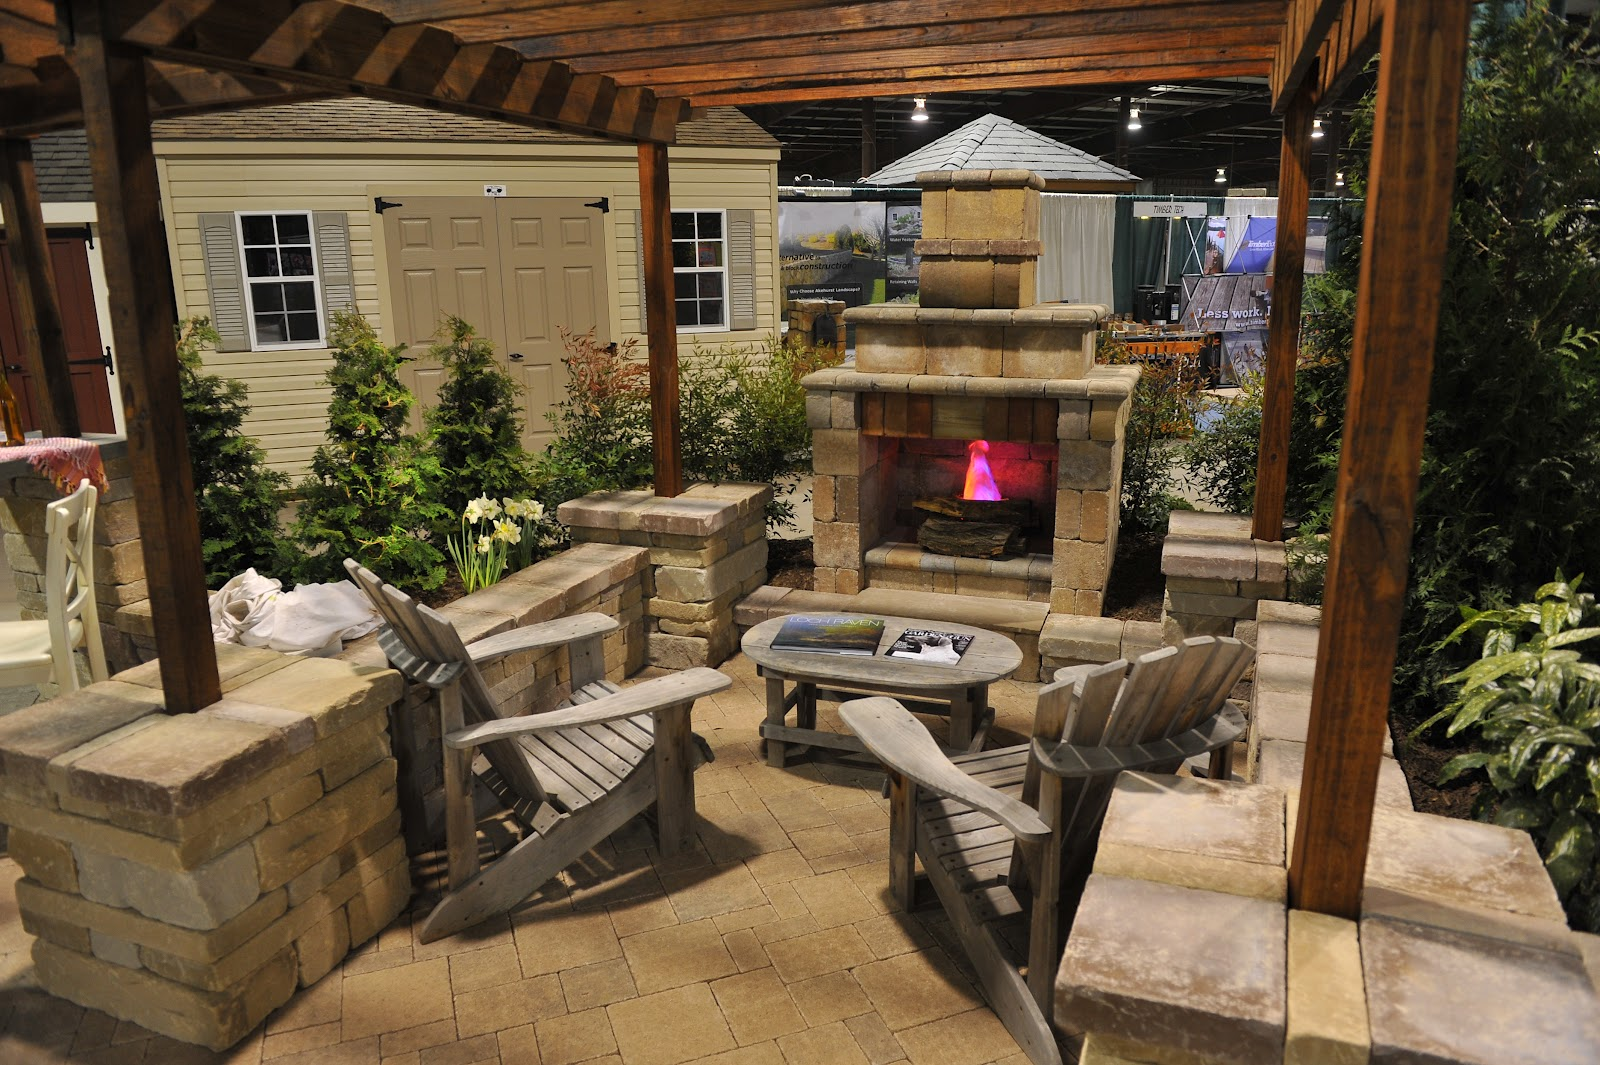 27 Split Level Exterior Remodel Ideas For Chicago on Small Backyard Renovation Ideas id=89603